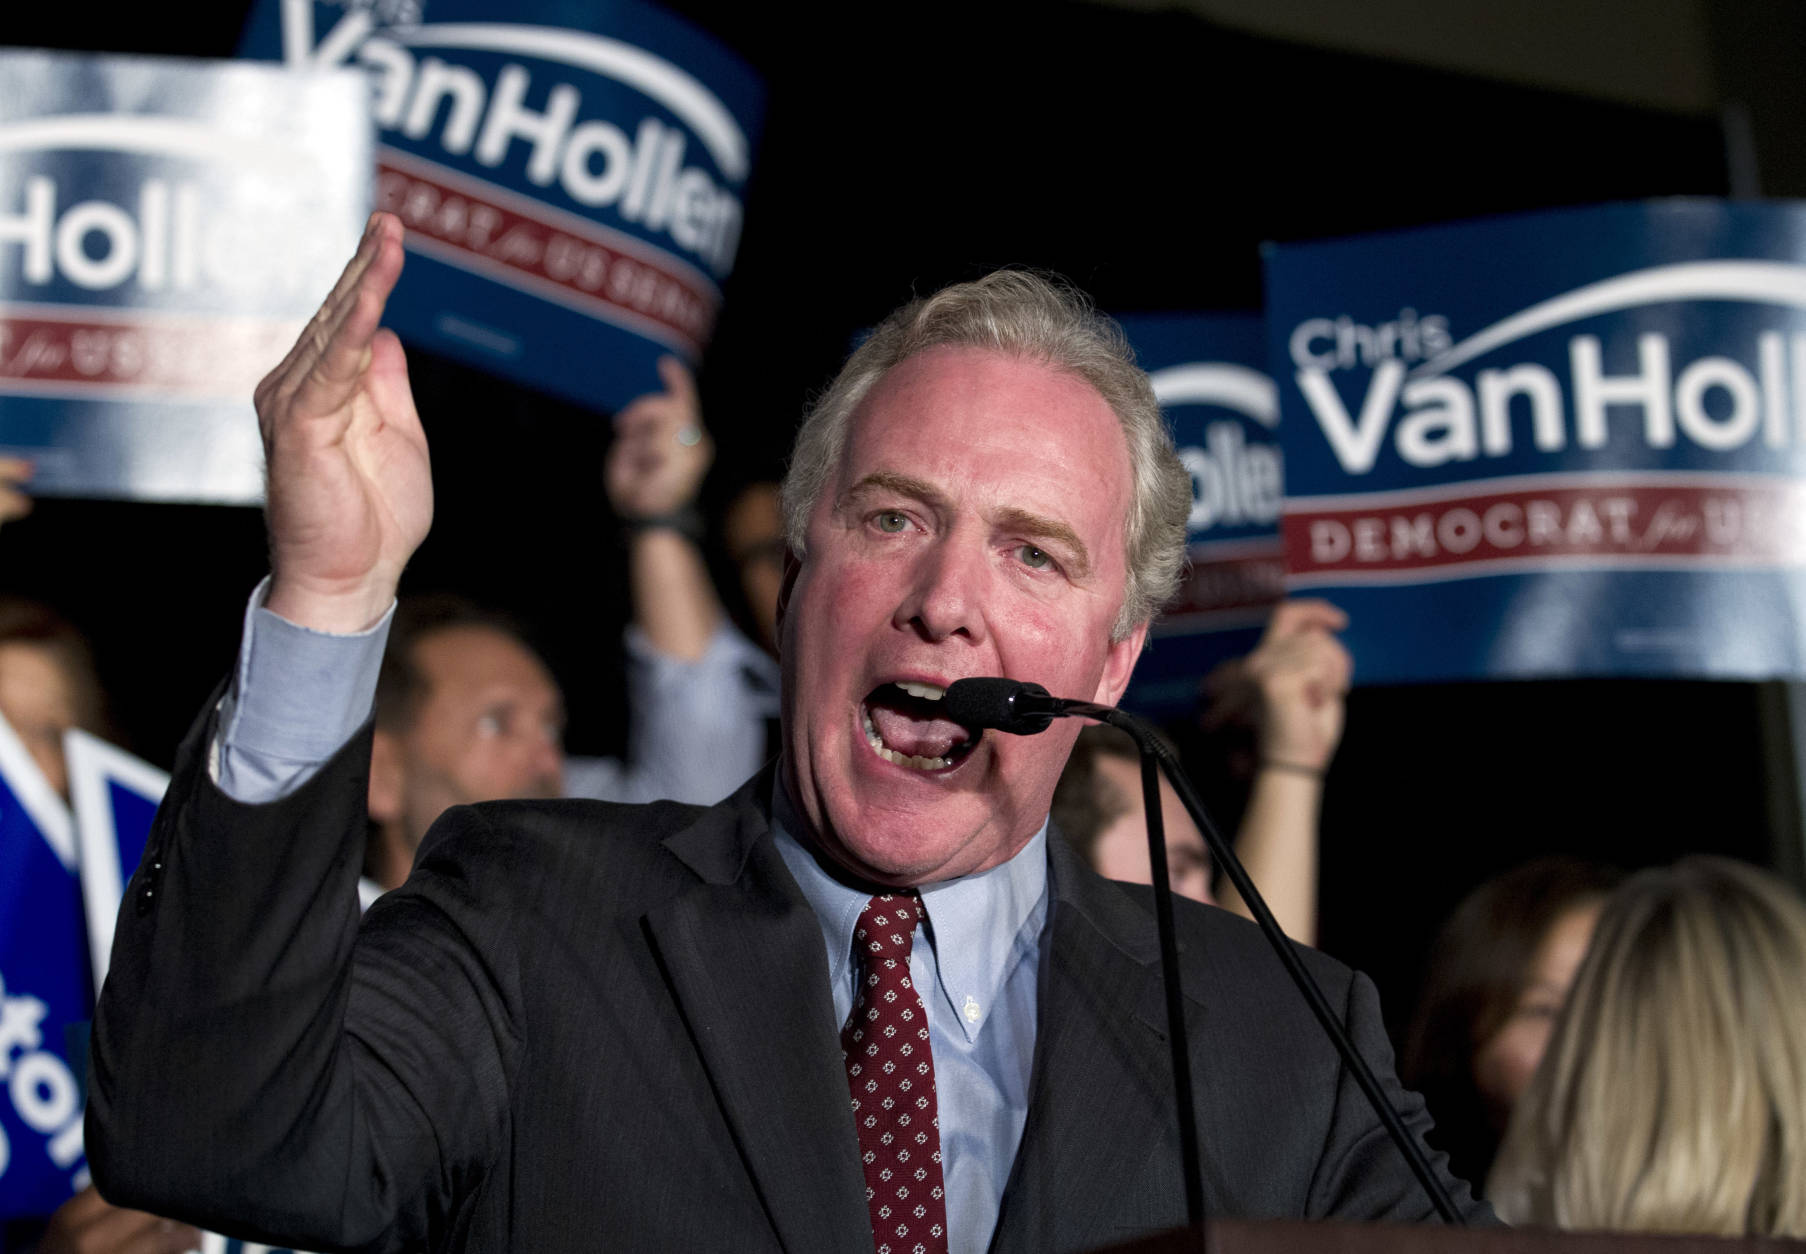 Sen.-elect Chris Van Hollen, D-Md. speaks to supporters after his victory in Maryland, Tuesday, Nov. 8, 2016, during the election night party at Tommy Douglas Conference Center in Silver Spring, Md. ( AP Photo/Jose Luis Magana)